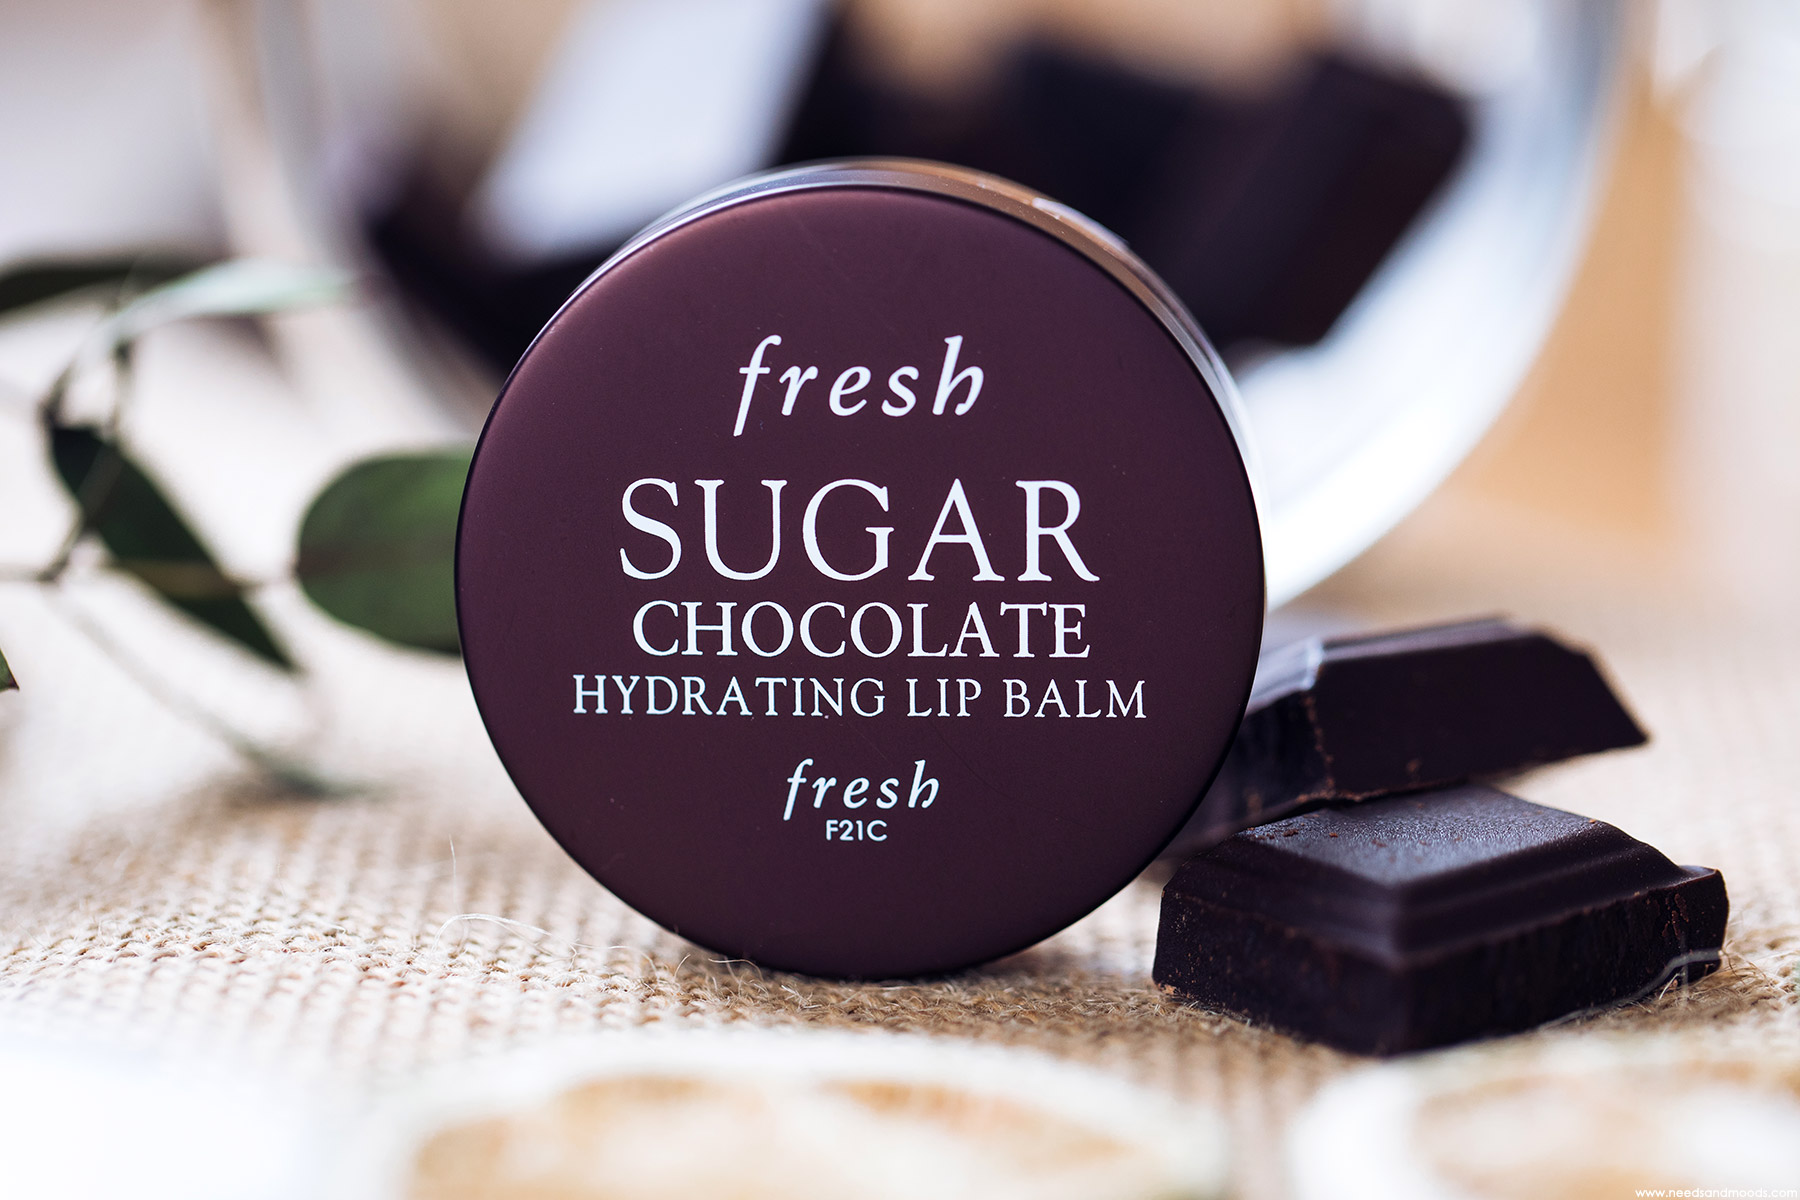 fresh sugar chocolate hydrating lip balm